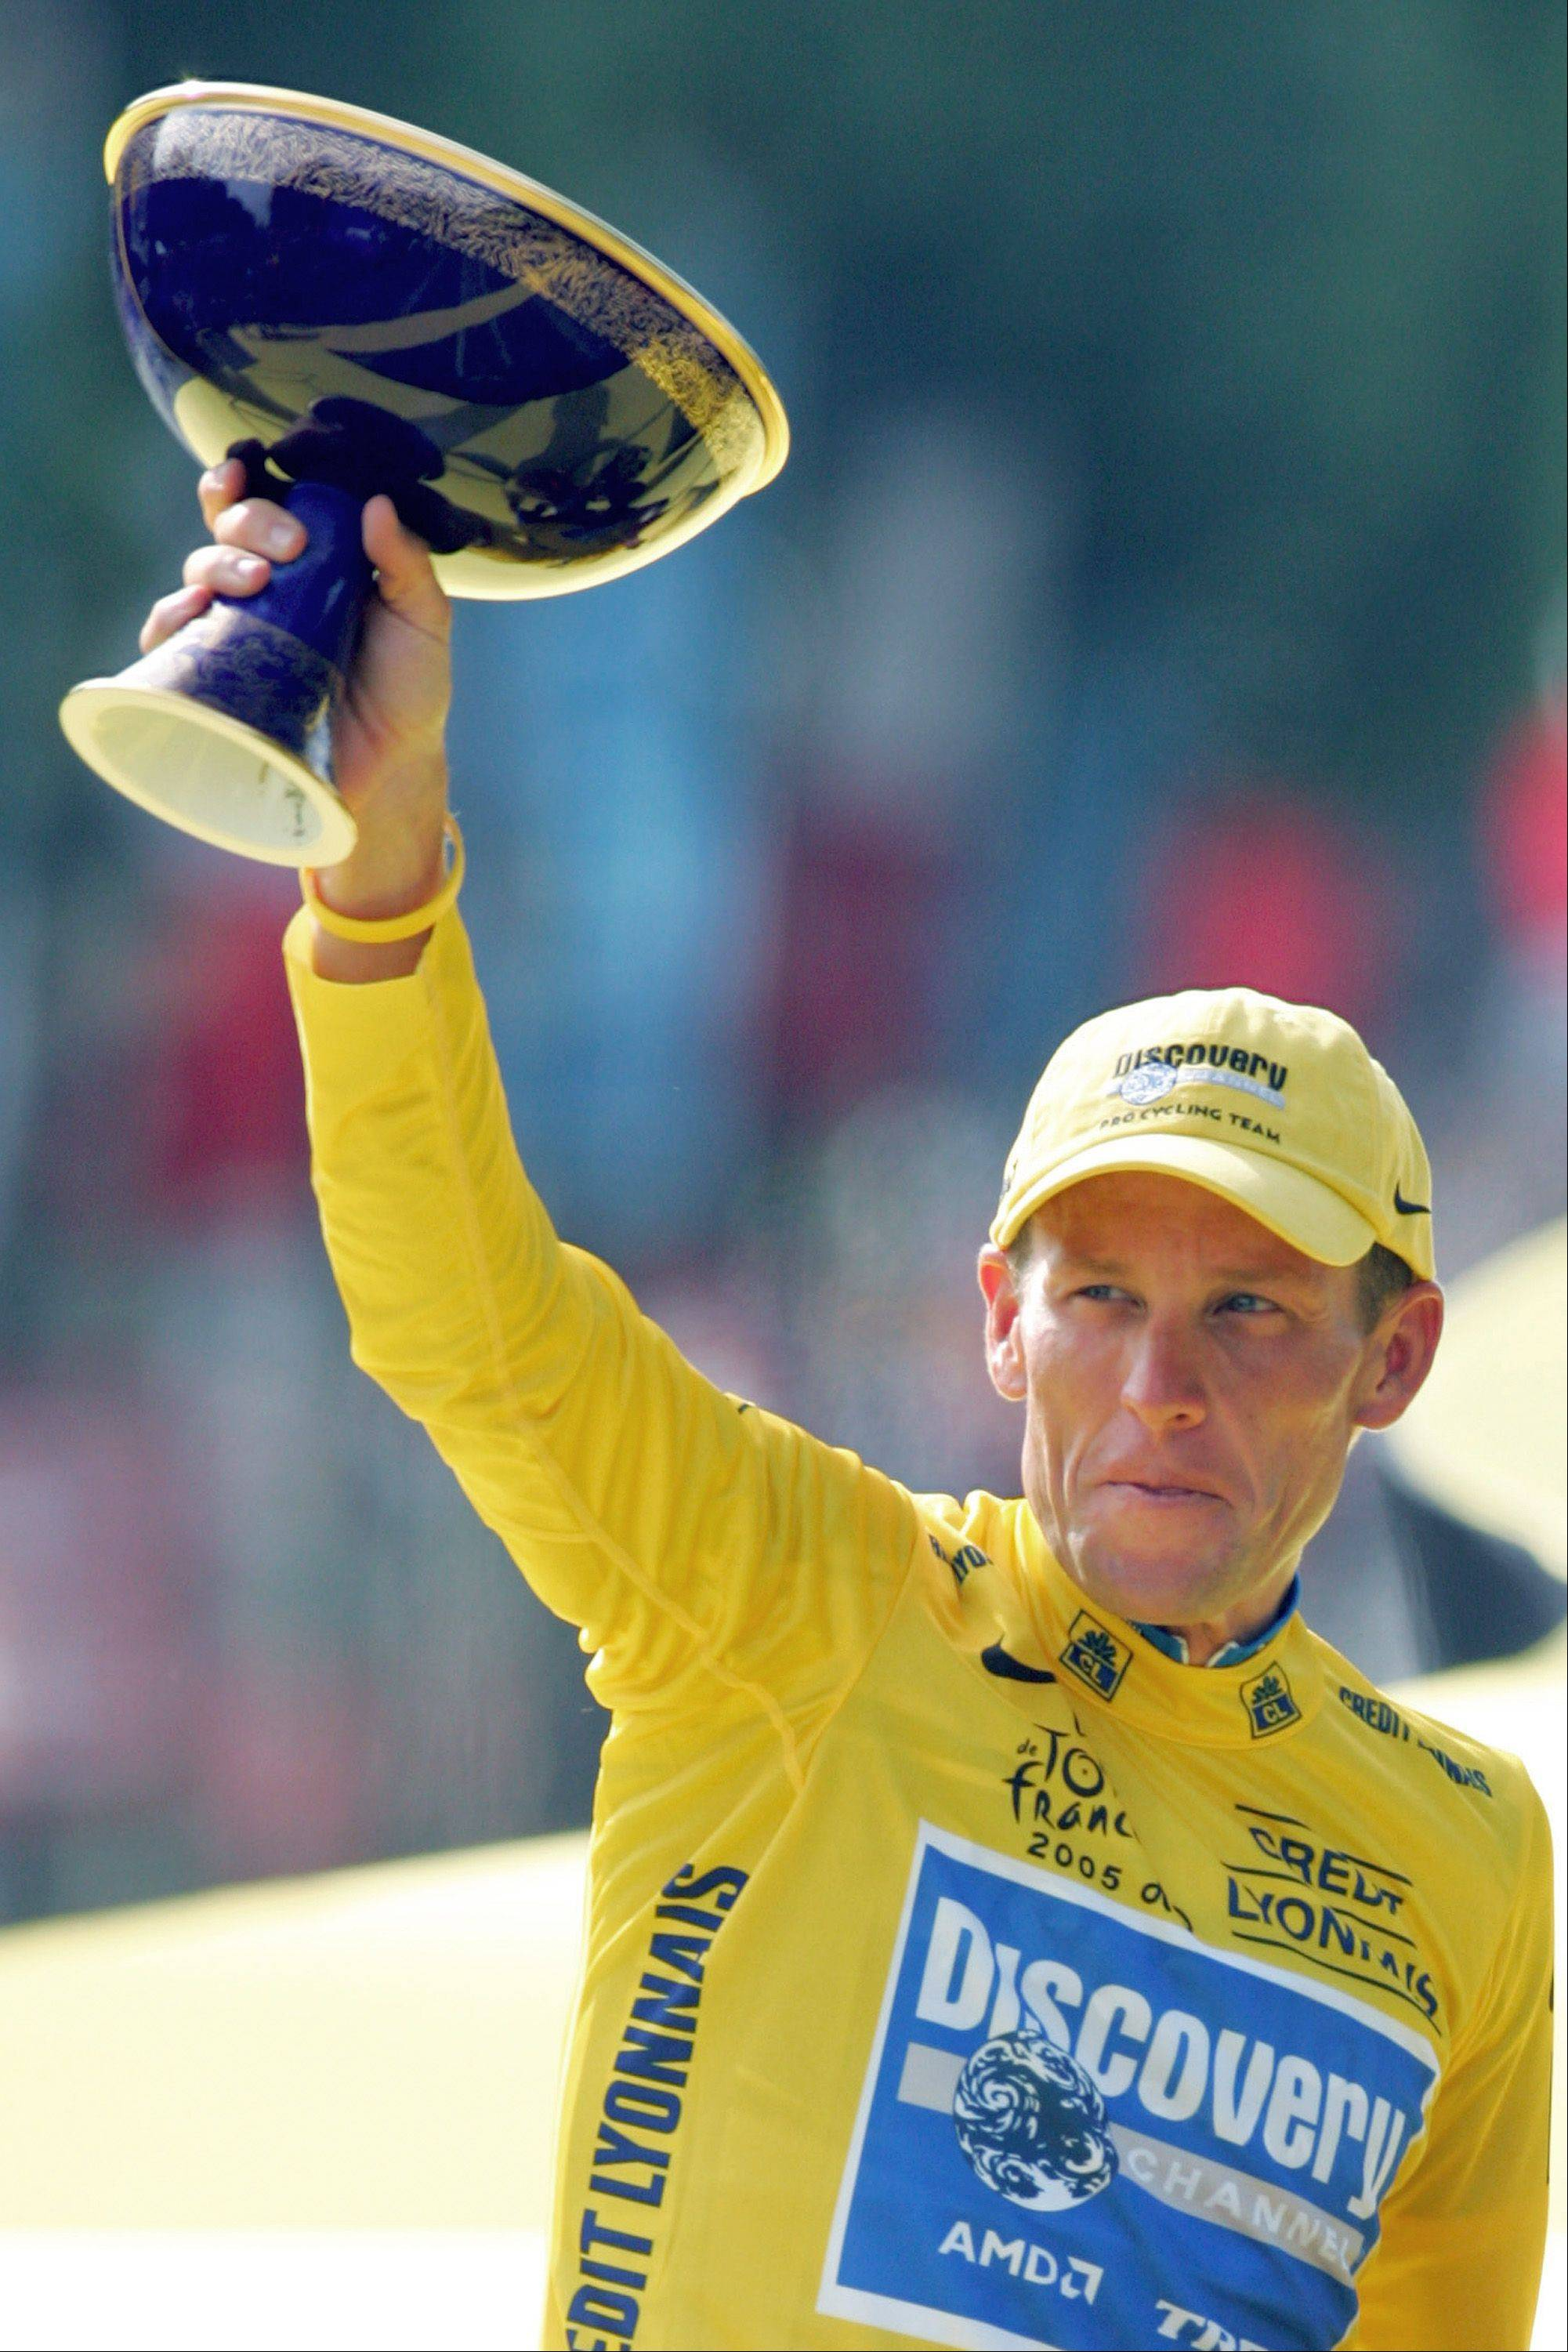 Lance Armstrong holds the winner's trophy after winning his seventh straight Tour de France cycling race, during ceremonies on the Champs-Elysees avenue in Paris. The U.S. Anti-Doping Agency is bringing doping charges against seven-time Tour de France winner Lance Armstrong, questioning his victories in those storied cycling races.